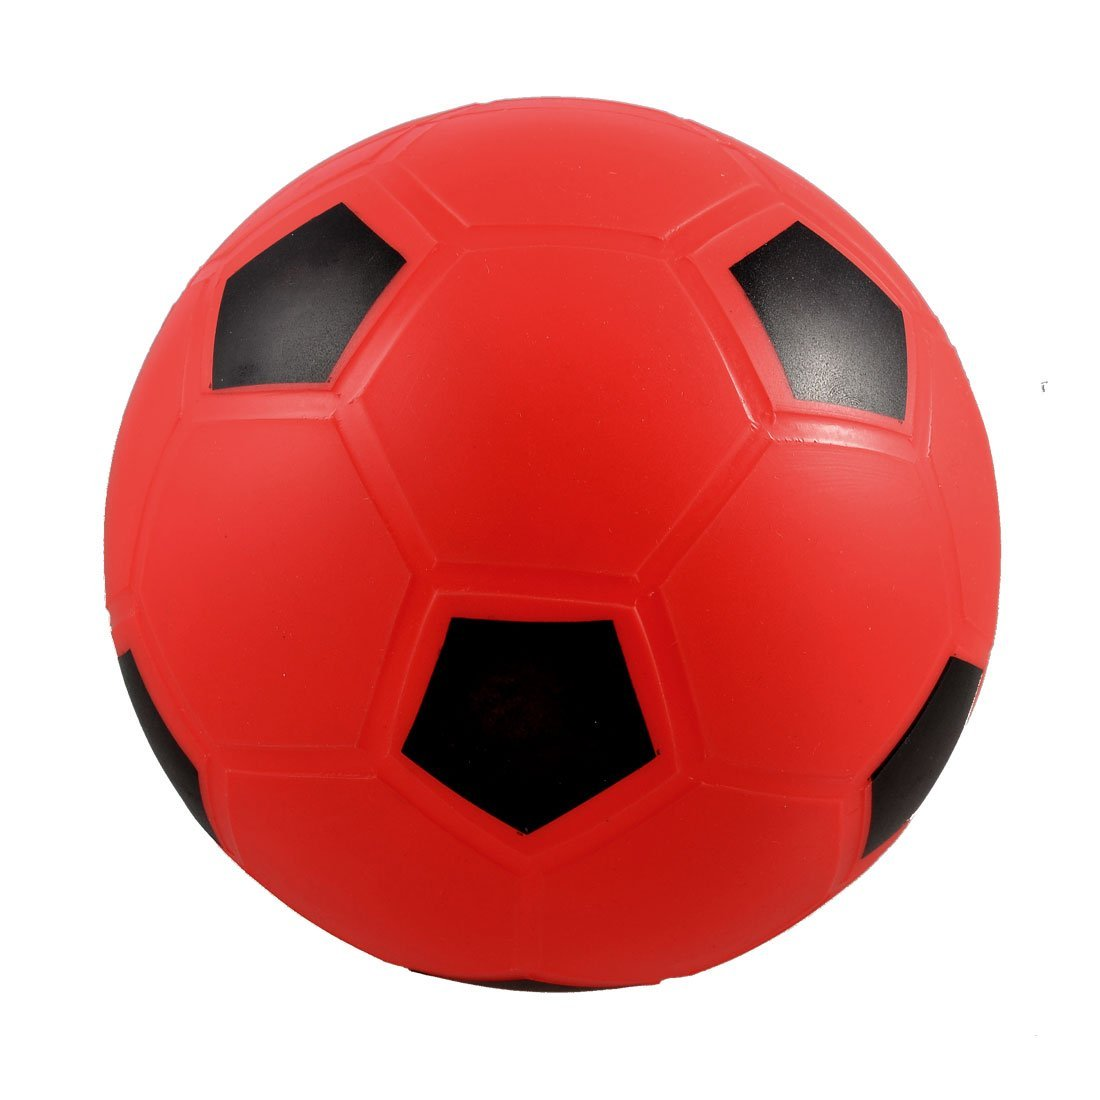 5.5 Inflatable Dia Red PVC Football Soccer Toy For Children Kids